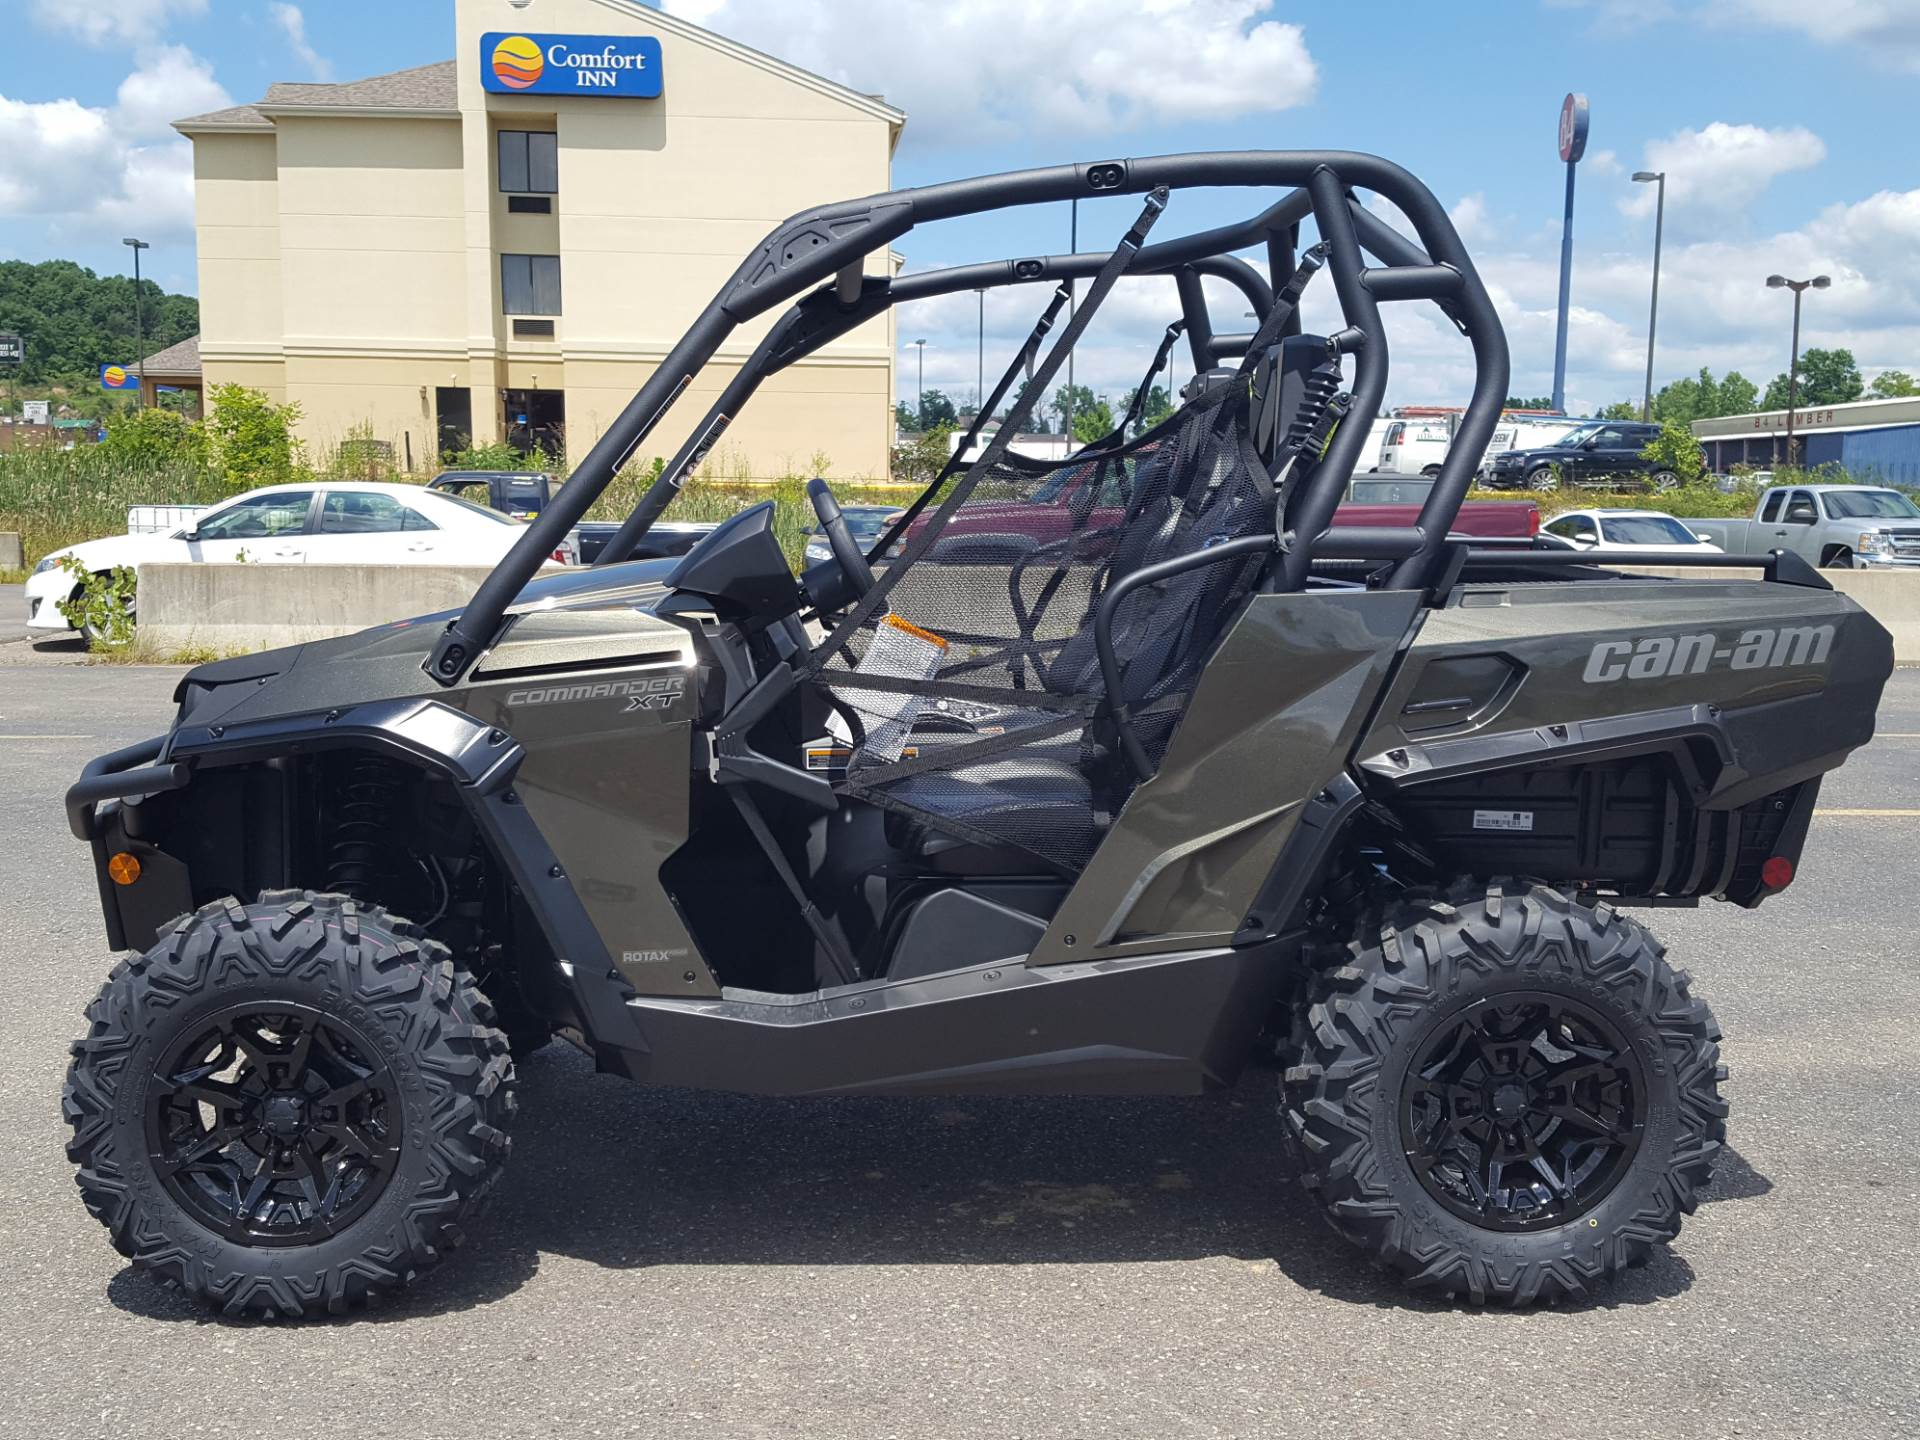 2019 Can-Am Commander XT 800R in Cambridge, Ohio - Photo 1